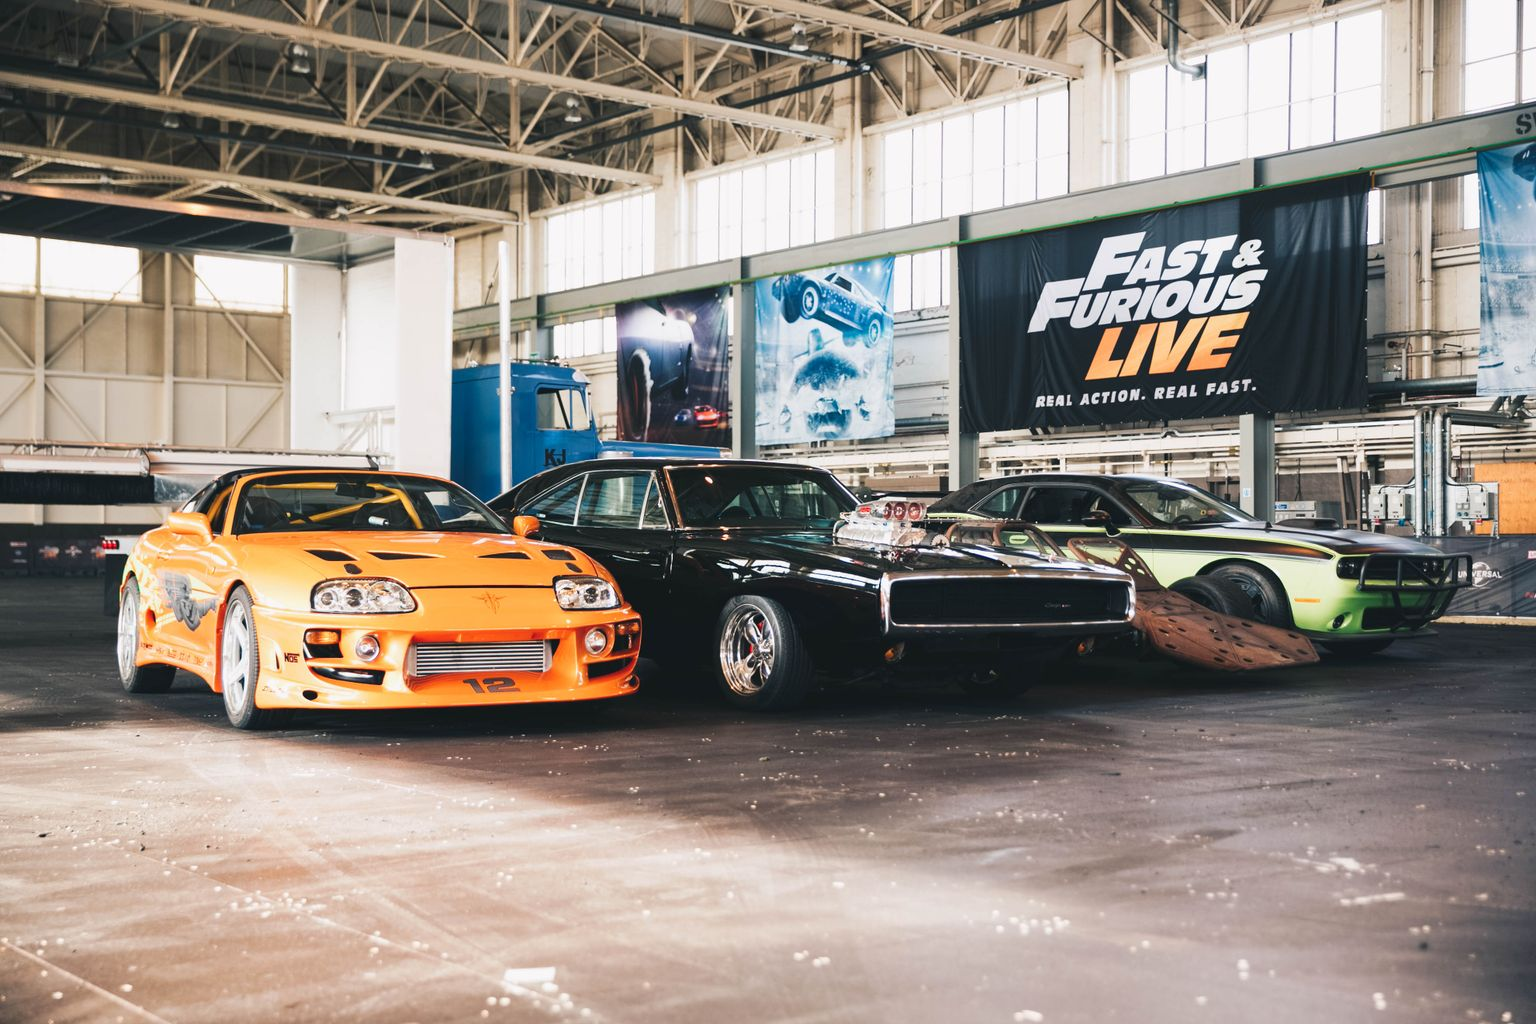 Fast and Furious skids into Belfast with £25m live show | Gigs ...